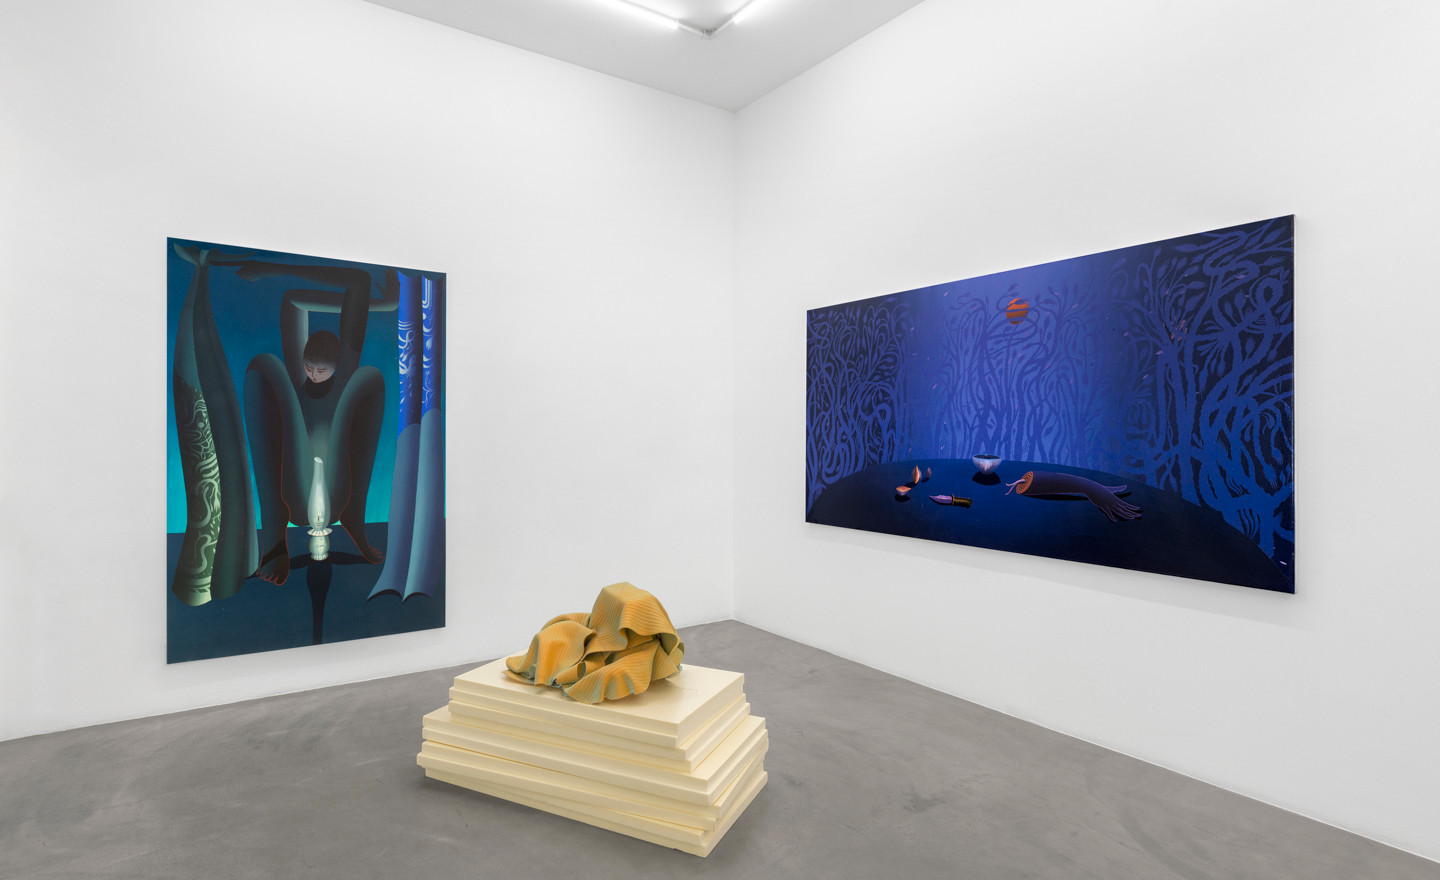 Igor Hosnedl - Vera Kox, In conversation / Chapter #2, 2020, installation view @RIBOT